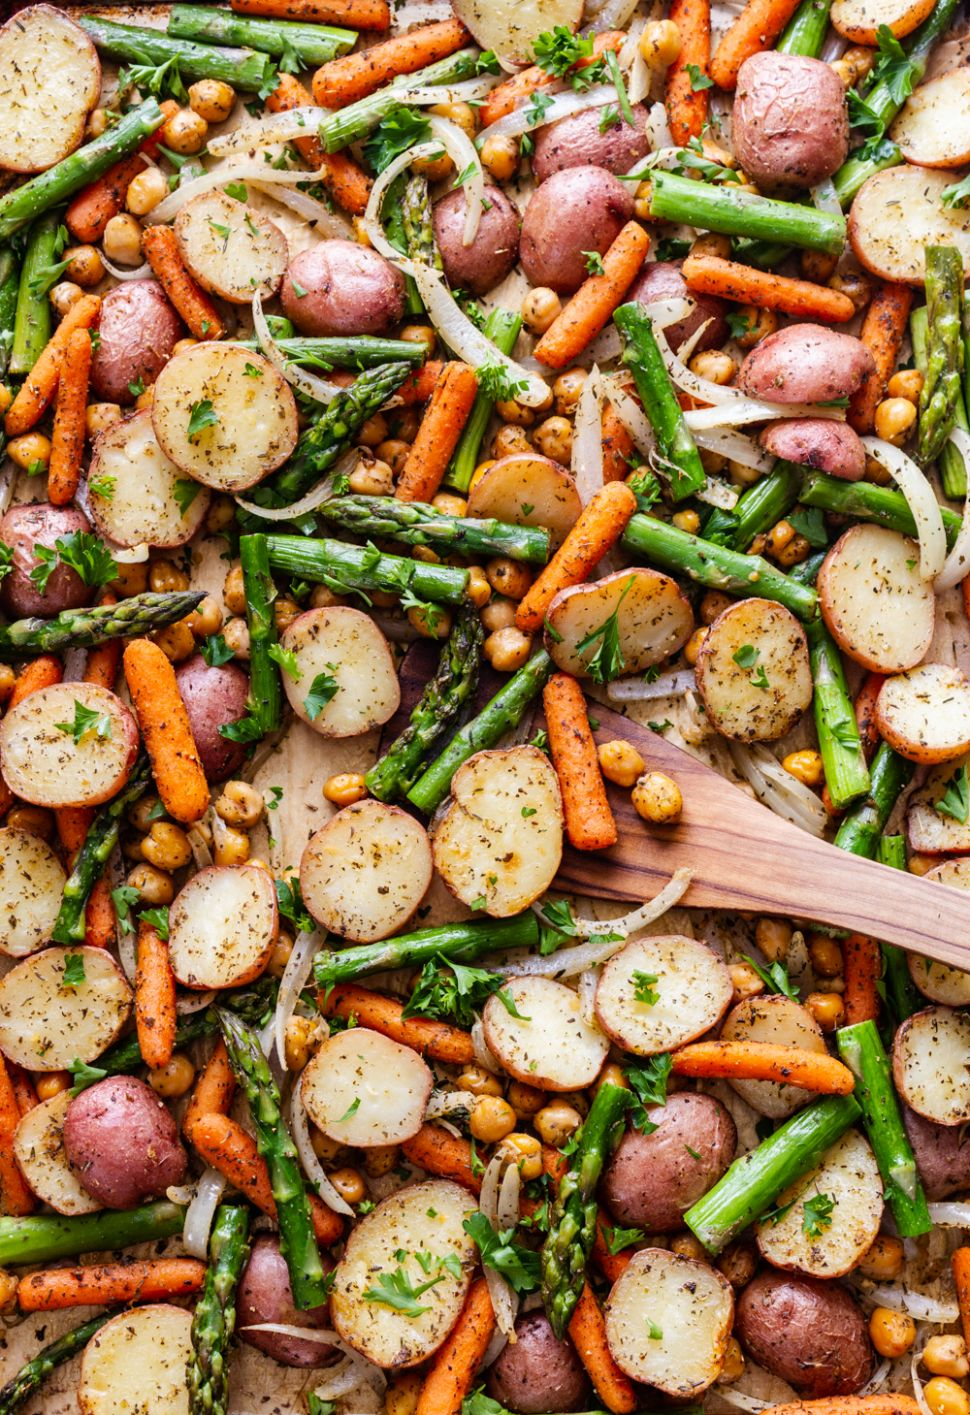 HERBED POTATO, ASPARAGUS & CHICKPEA SHEET PAN DINNER